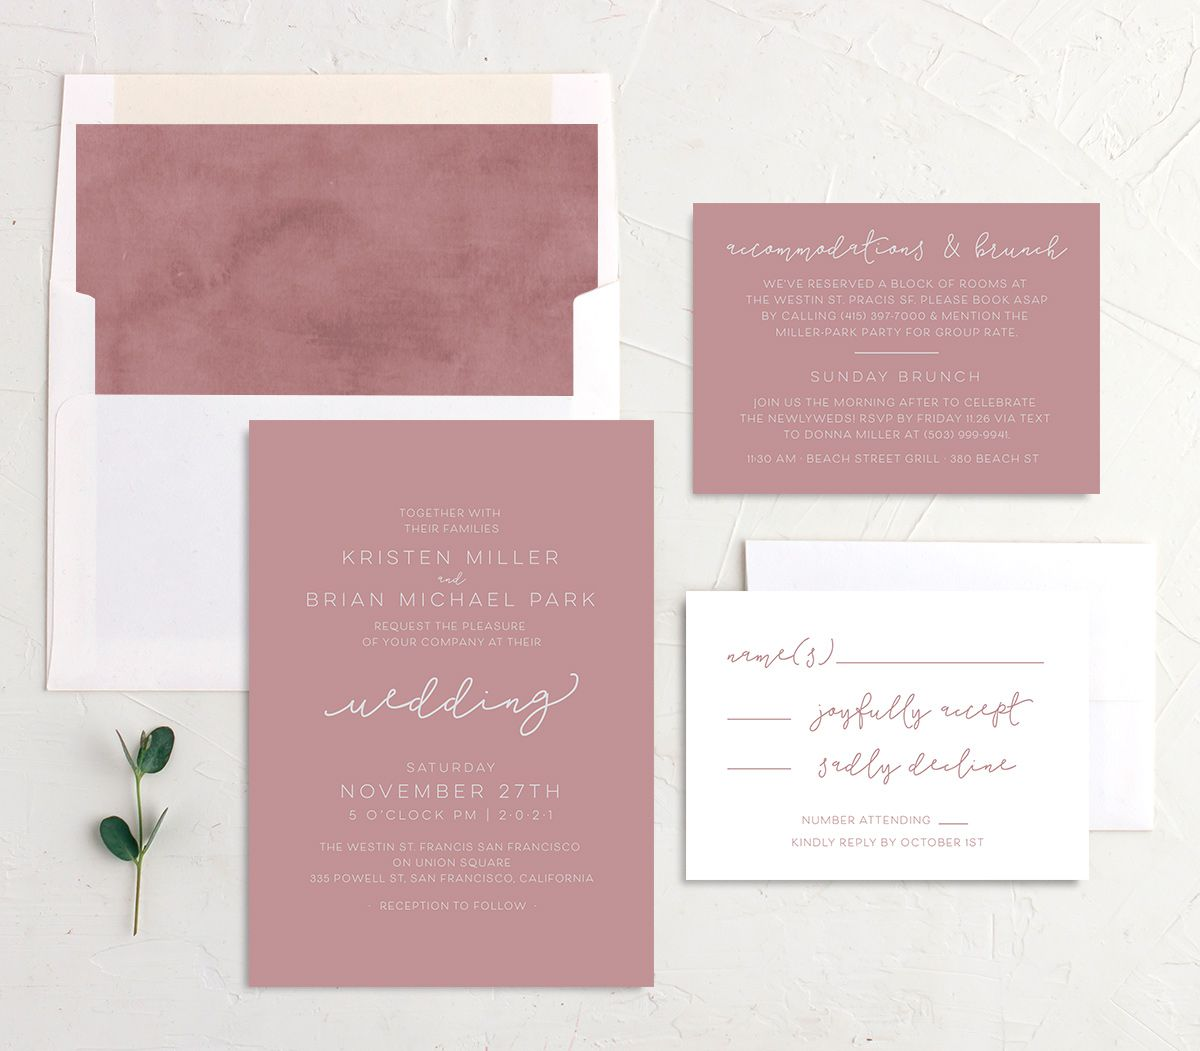 Gold Calligraphy Wedding Invite Suite in pink